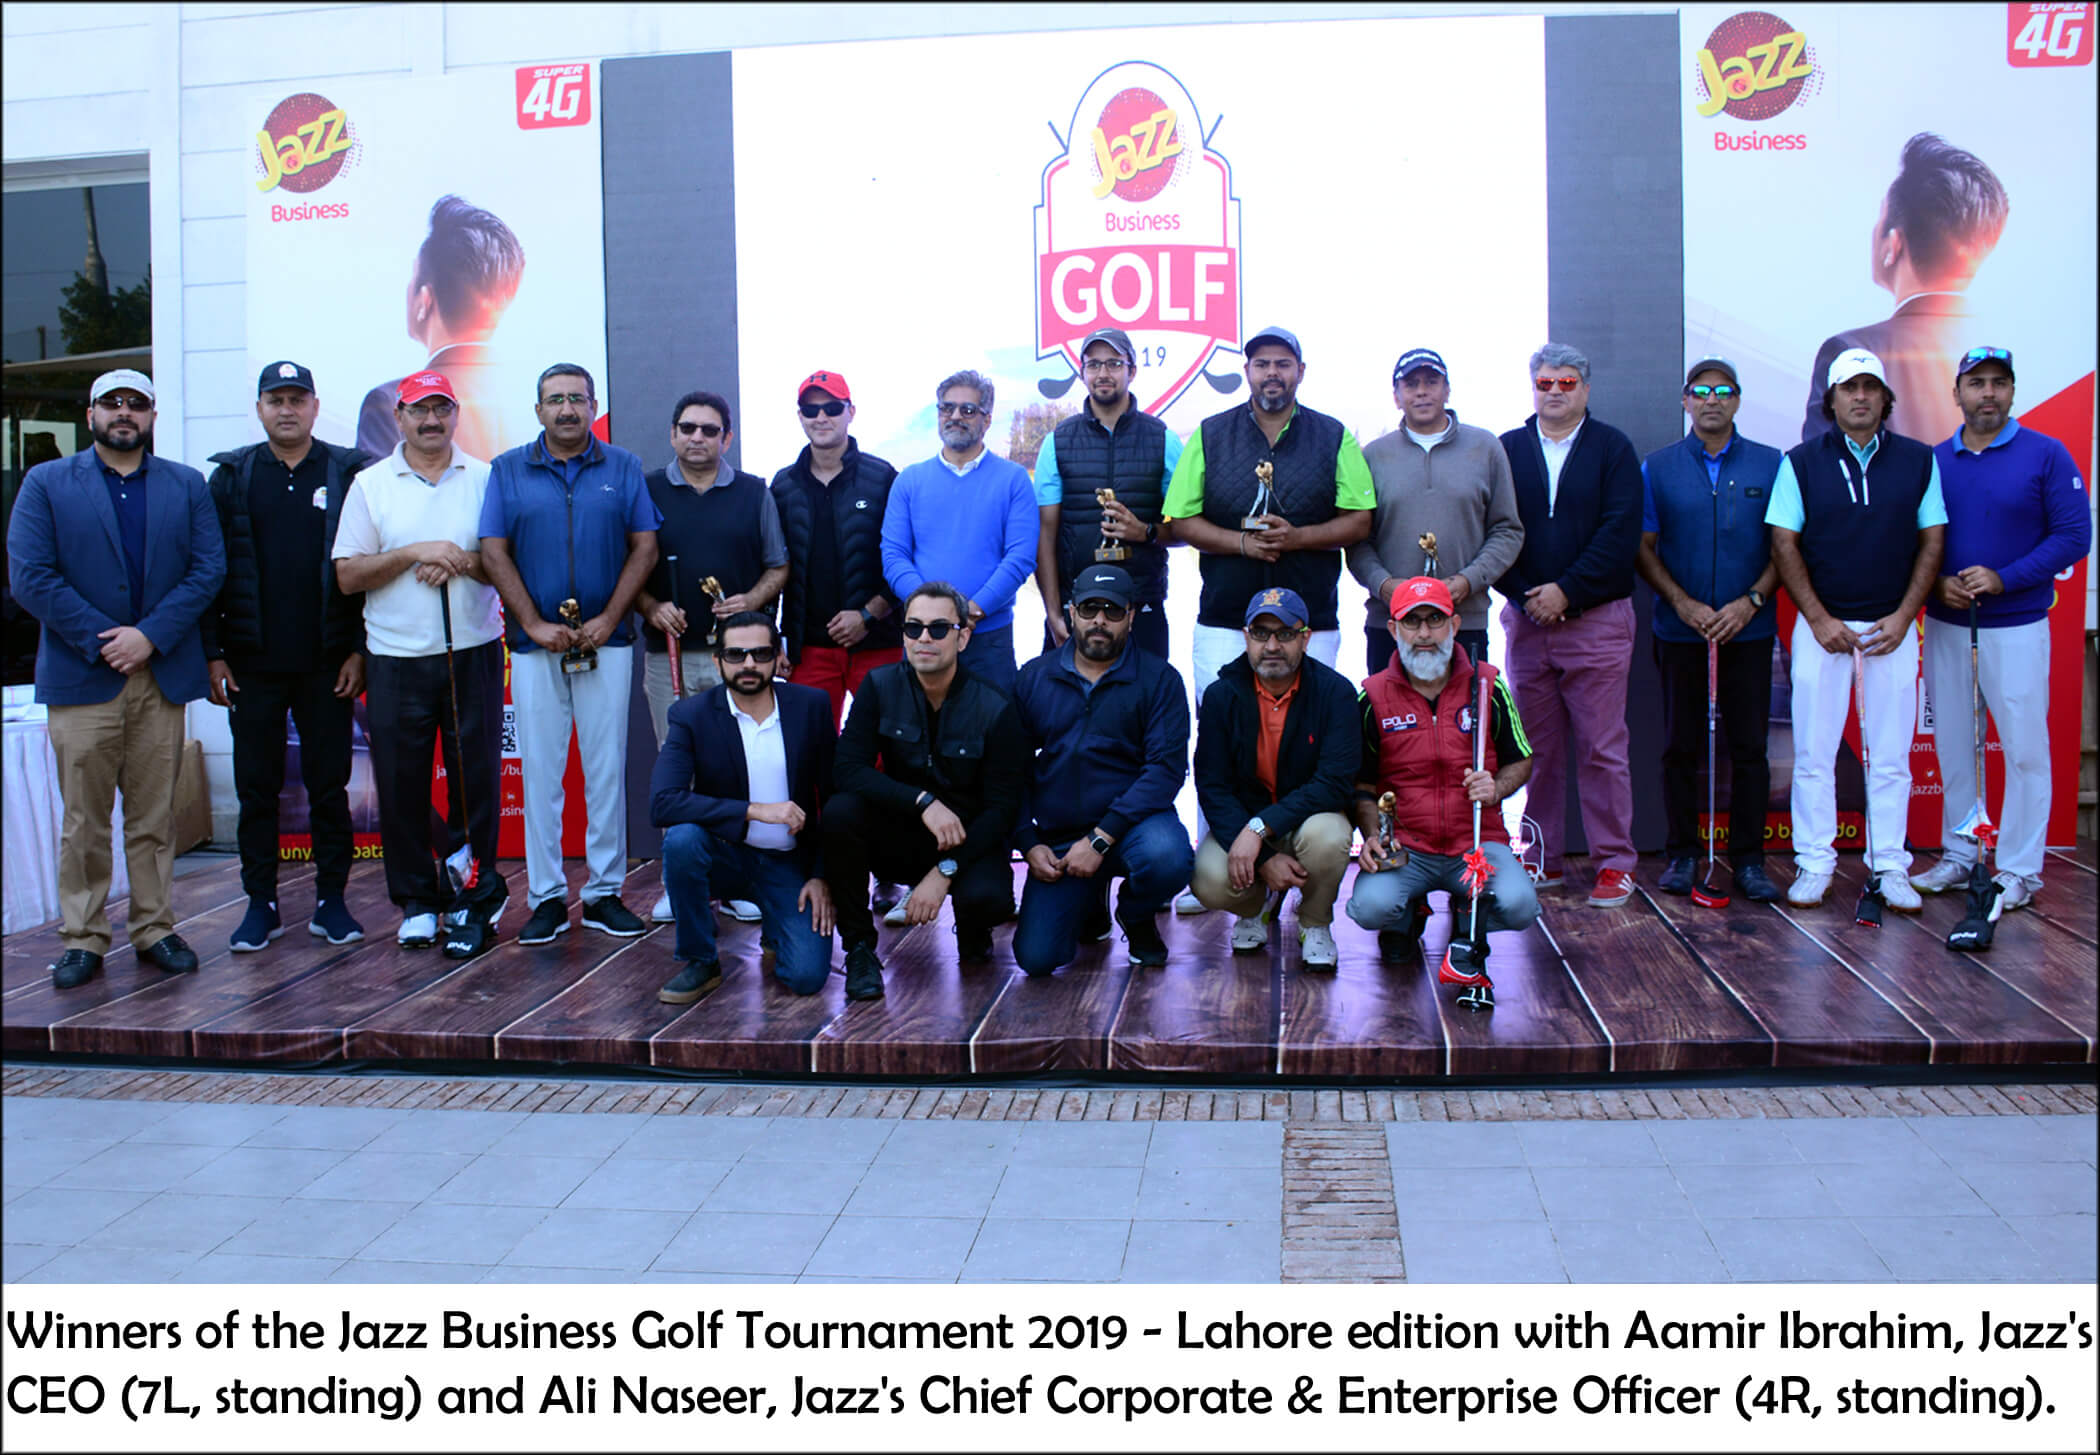 Jazz Business Golf Tournament 2019 Takes Place in Lahore